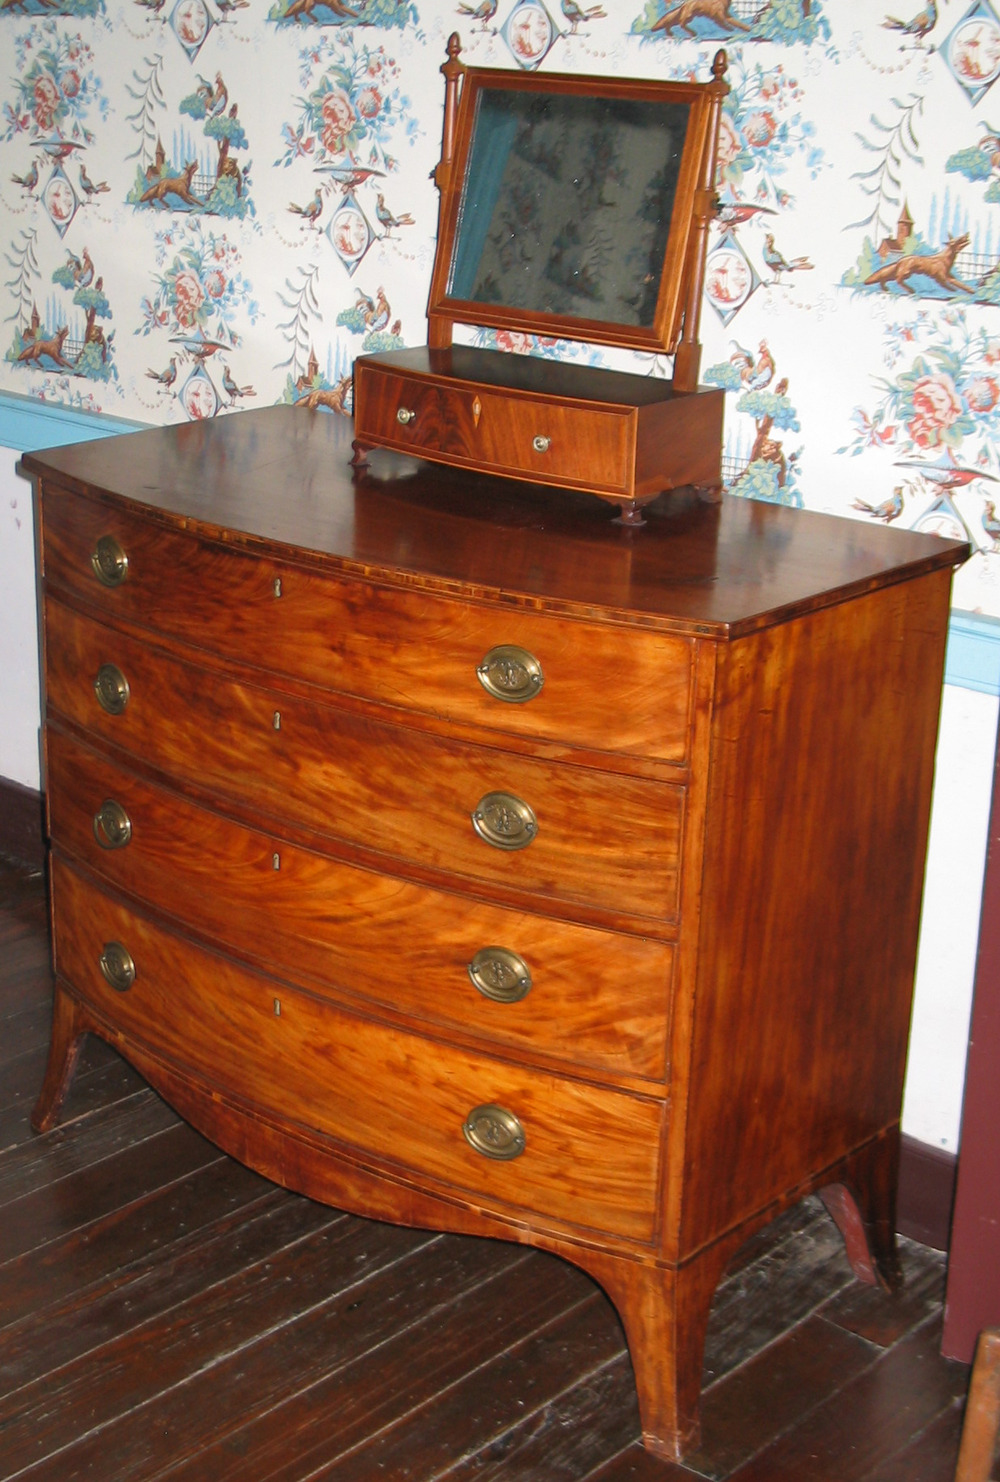 Pictures Of Antique Furniture Lovely Spring Cleaning Basic Care and Maintenance for Antique